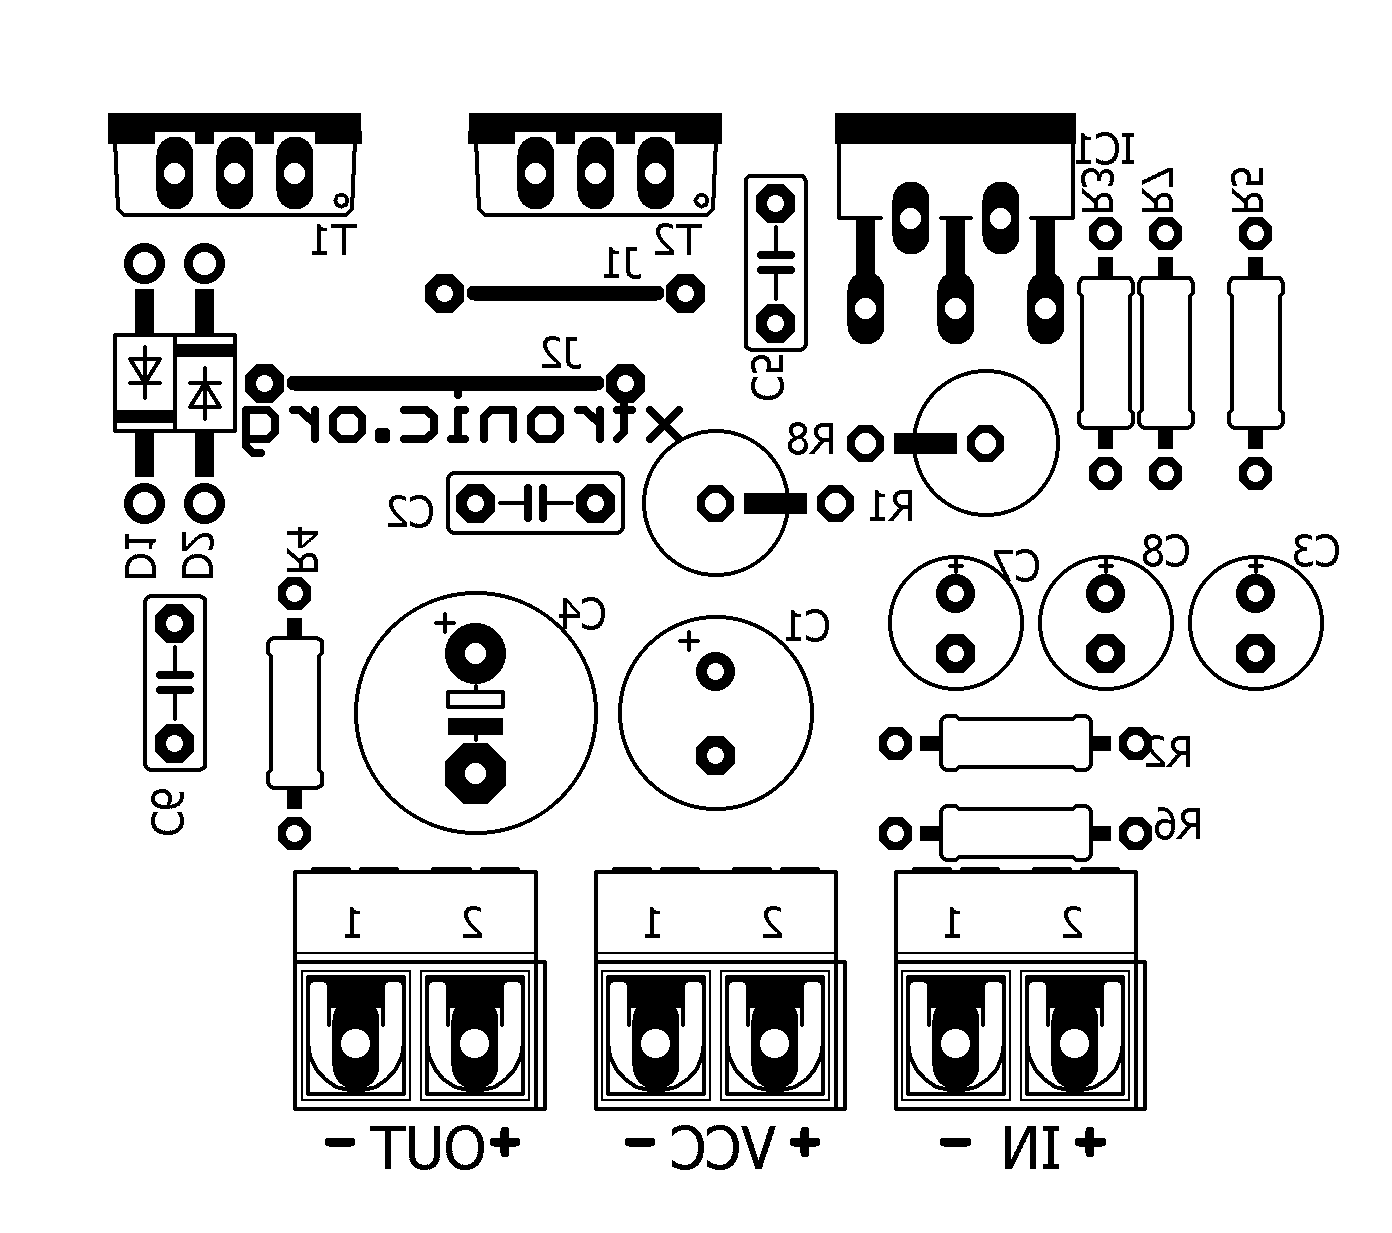 18w Stereo Hifi Audio Amplifier Tda2030 Circuit Diagram Data 18 Watt With Ha13118 Transistors Bd908 Bd907 Pcb Silk Rh Pinterest Com